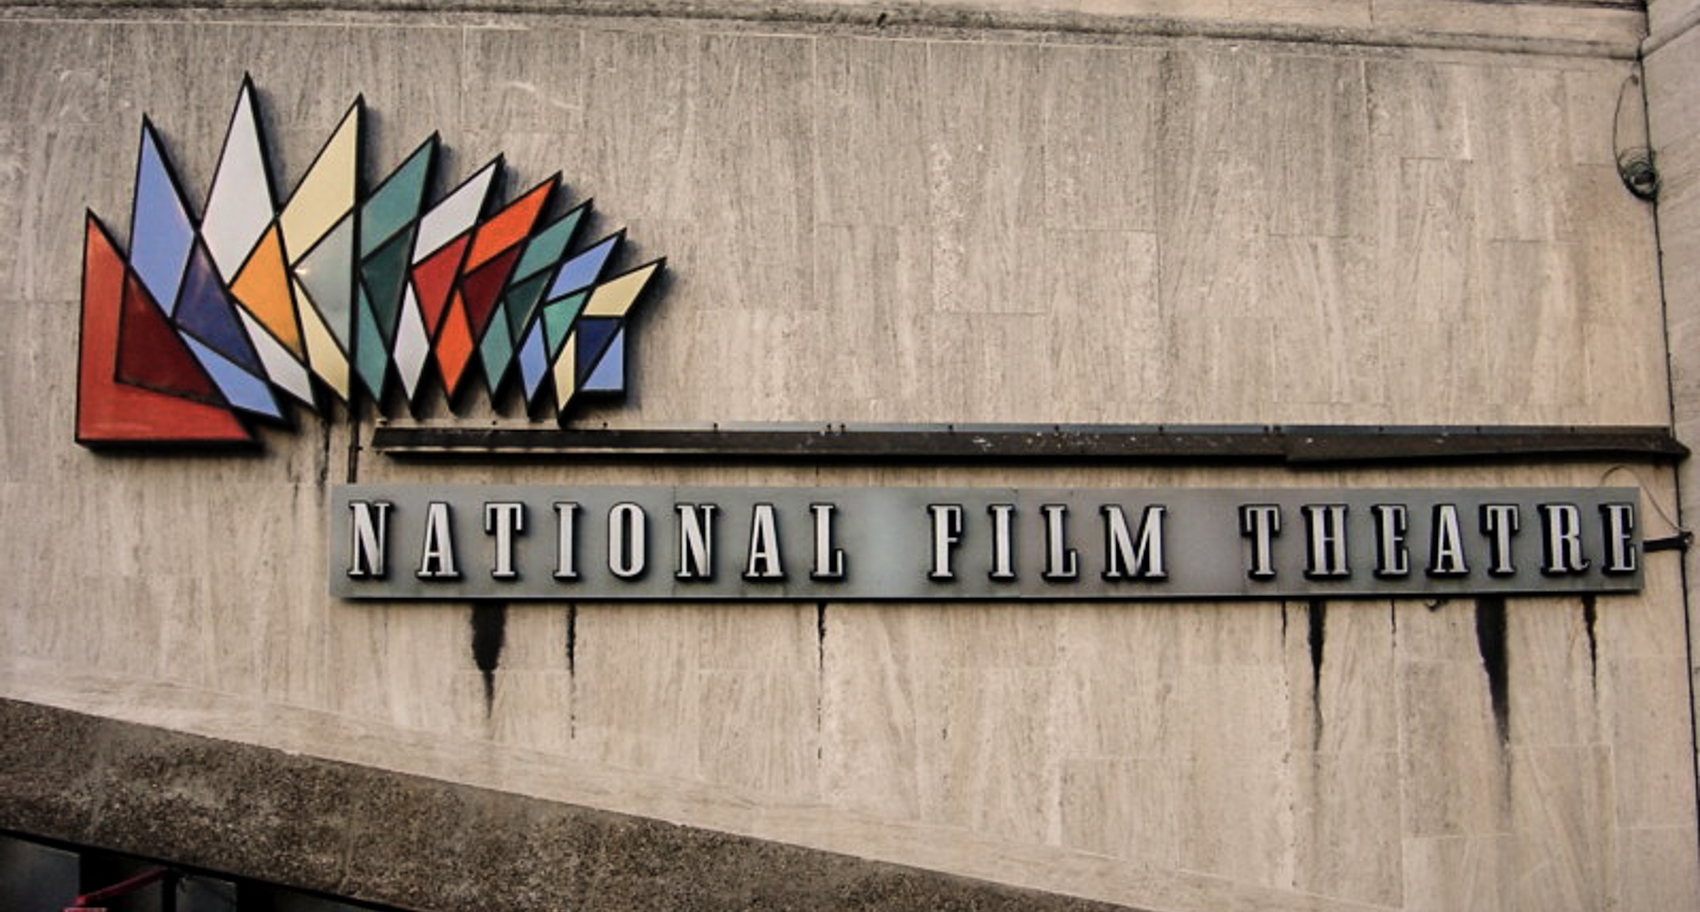 The original National Film Theatre sign, Southbank Centre, London